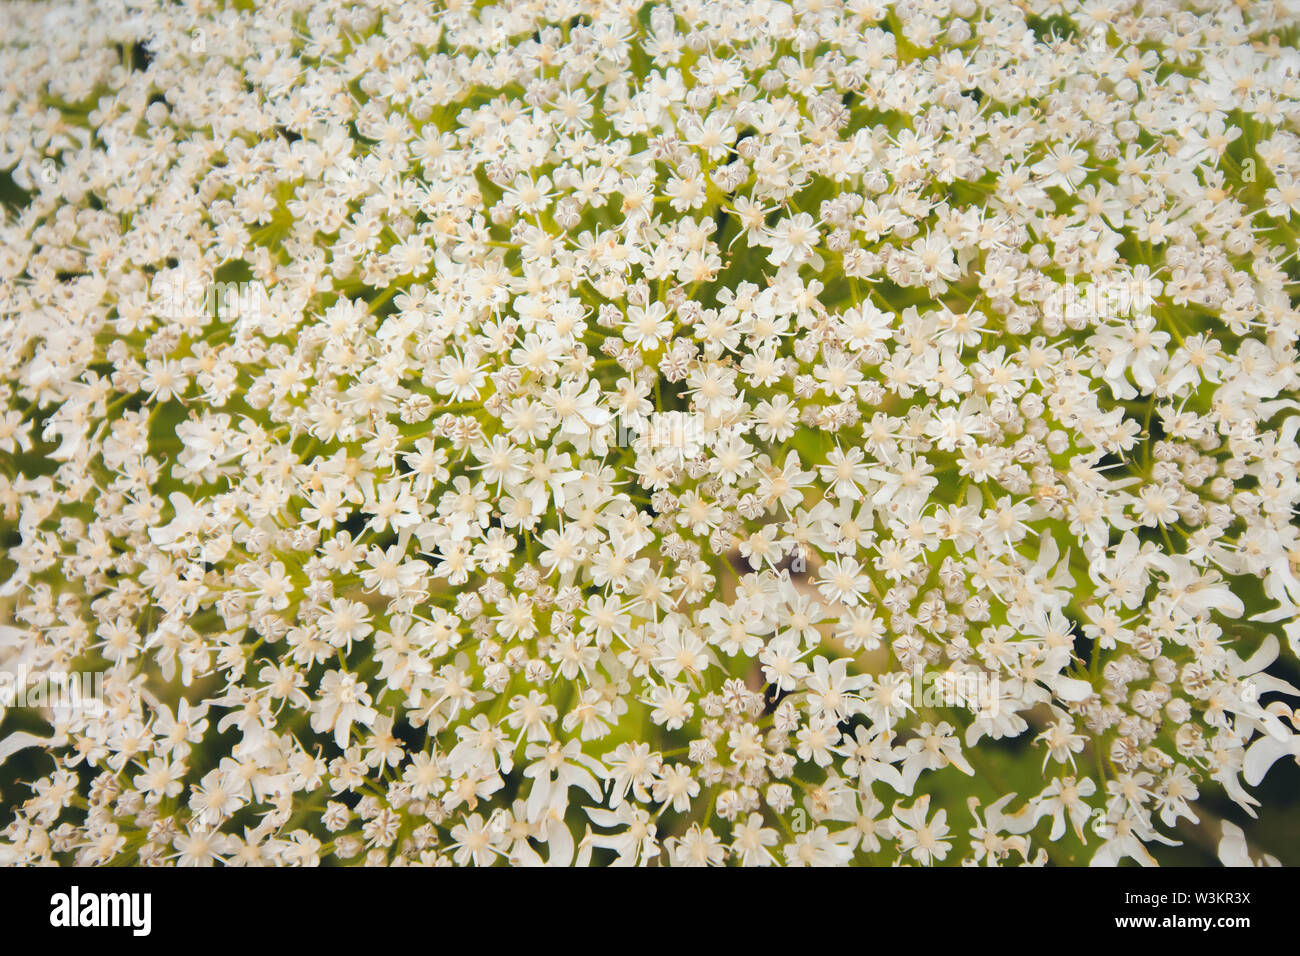 Inflorescence of a large number of white flowers. Flowers grow against the background of green grass that grows in a forest glade. Stock Photo